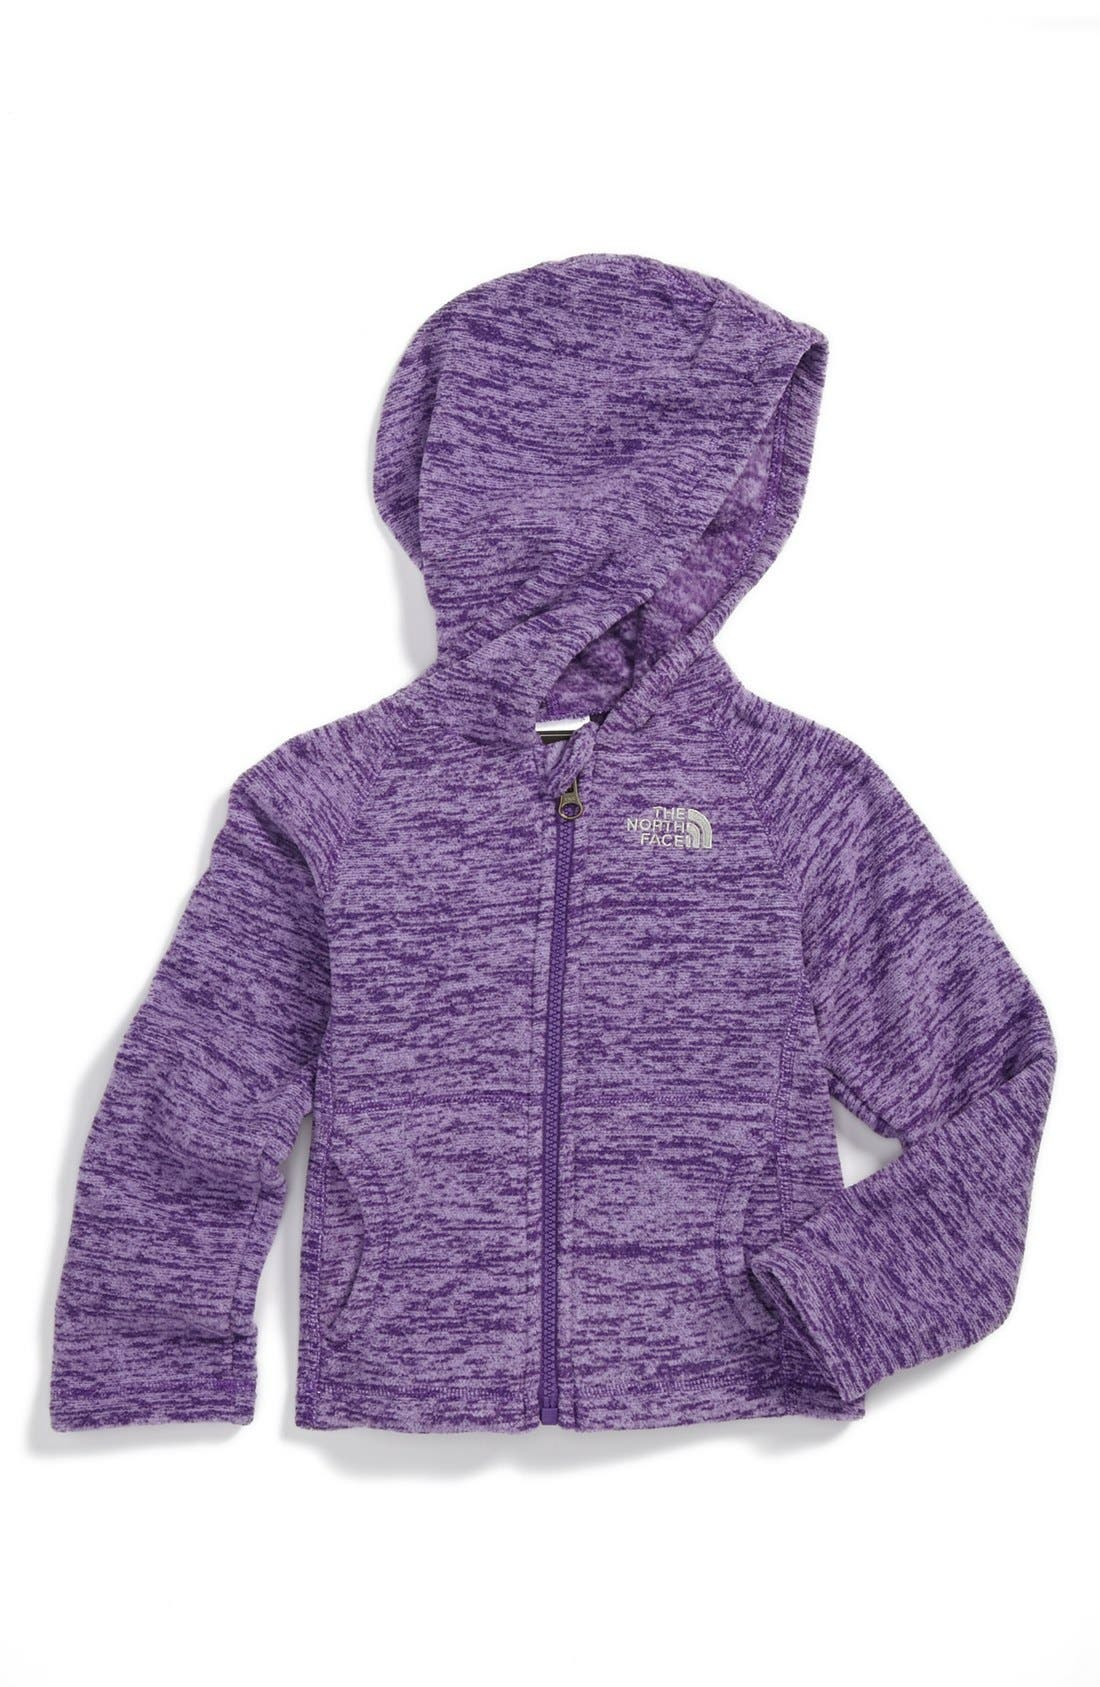 Alternate Image 1 Selected - The North Face 'Glacier' Fleece Hoodie (Toddler Girls)